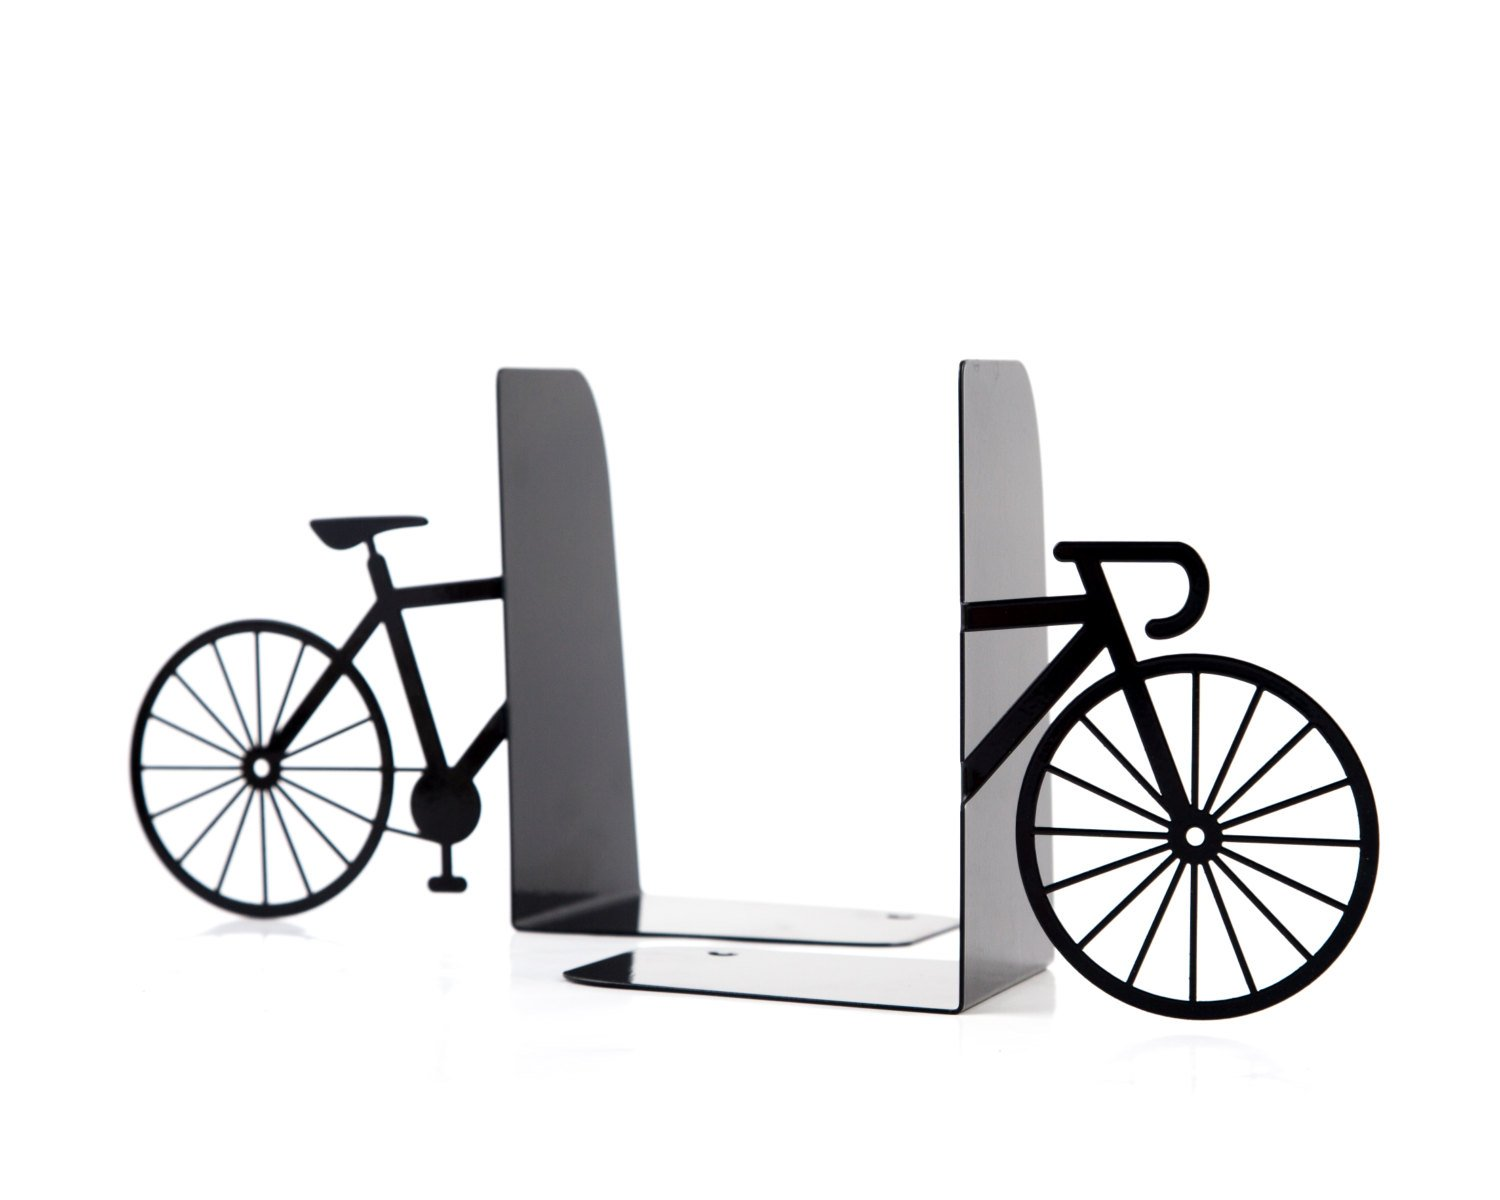 Unique Metal Bookends - My bike - shelf decor // functional modern home decor // housewarming gift / decorative book holders / FREE SHIPPING